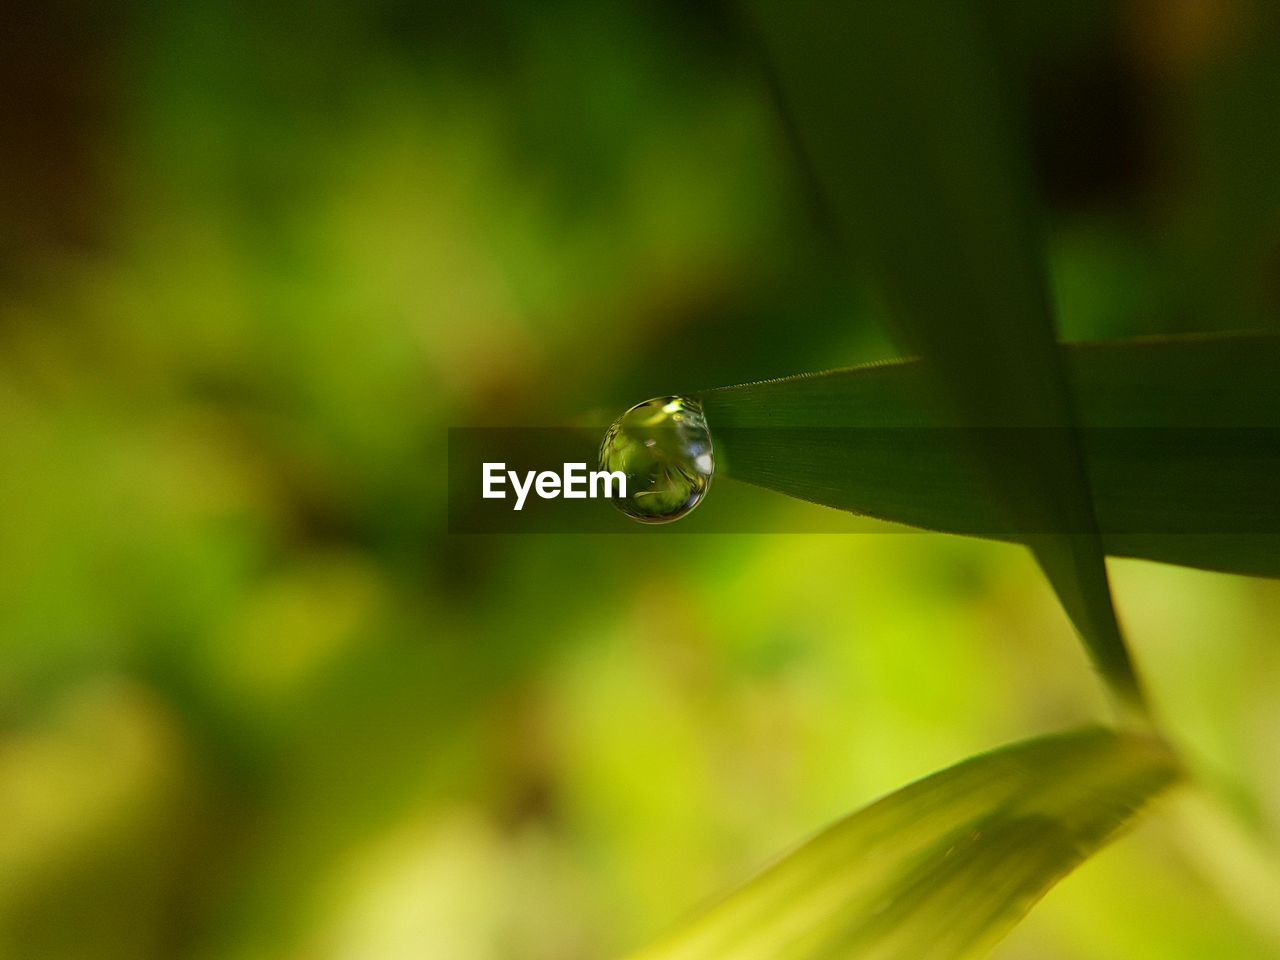 nature, plant, growth, beauty in nature, drop, fragility, green color, close-up, no people, outdoors, focus on foreground, day, leaf, freshness, water